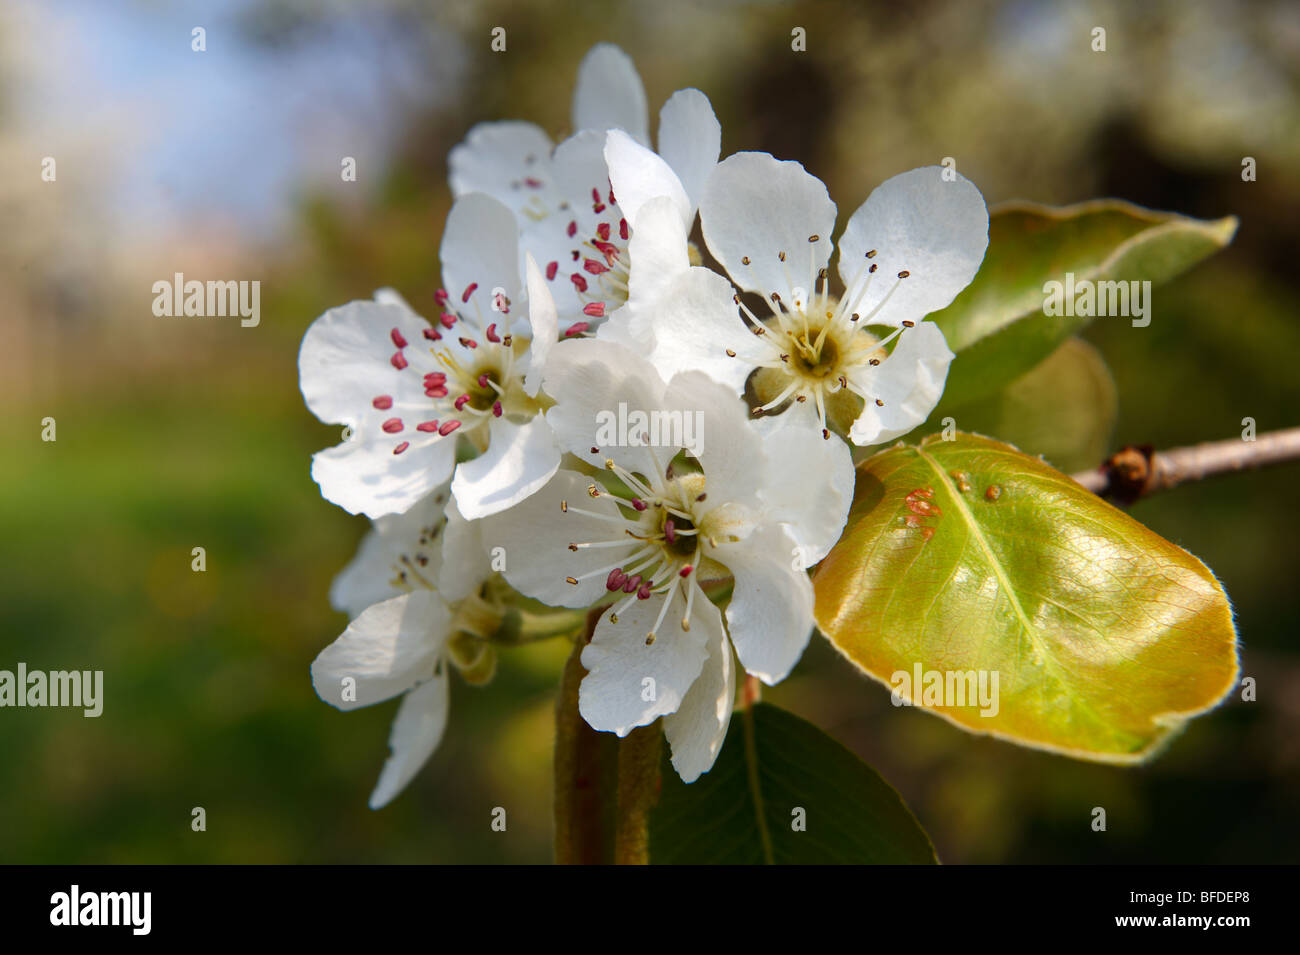 White cherry blossom on the orchard tree. - Stock Image